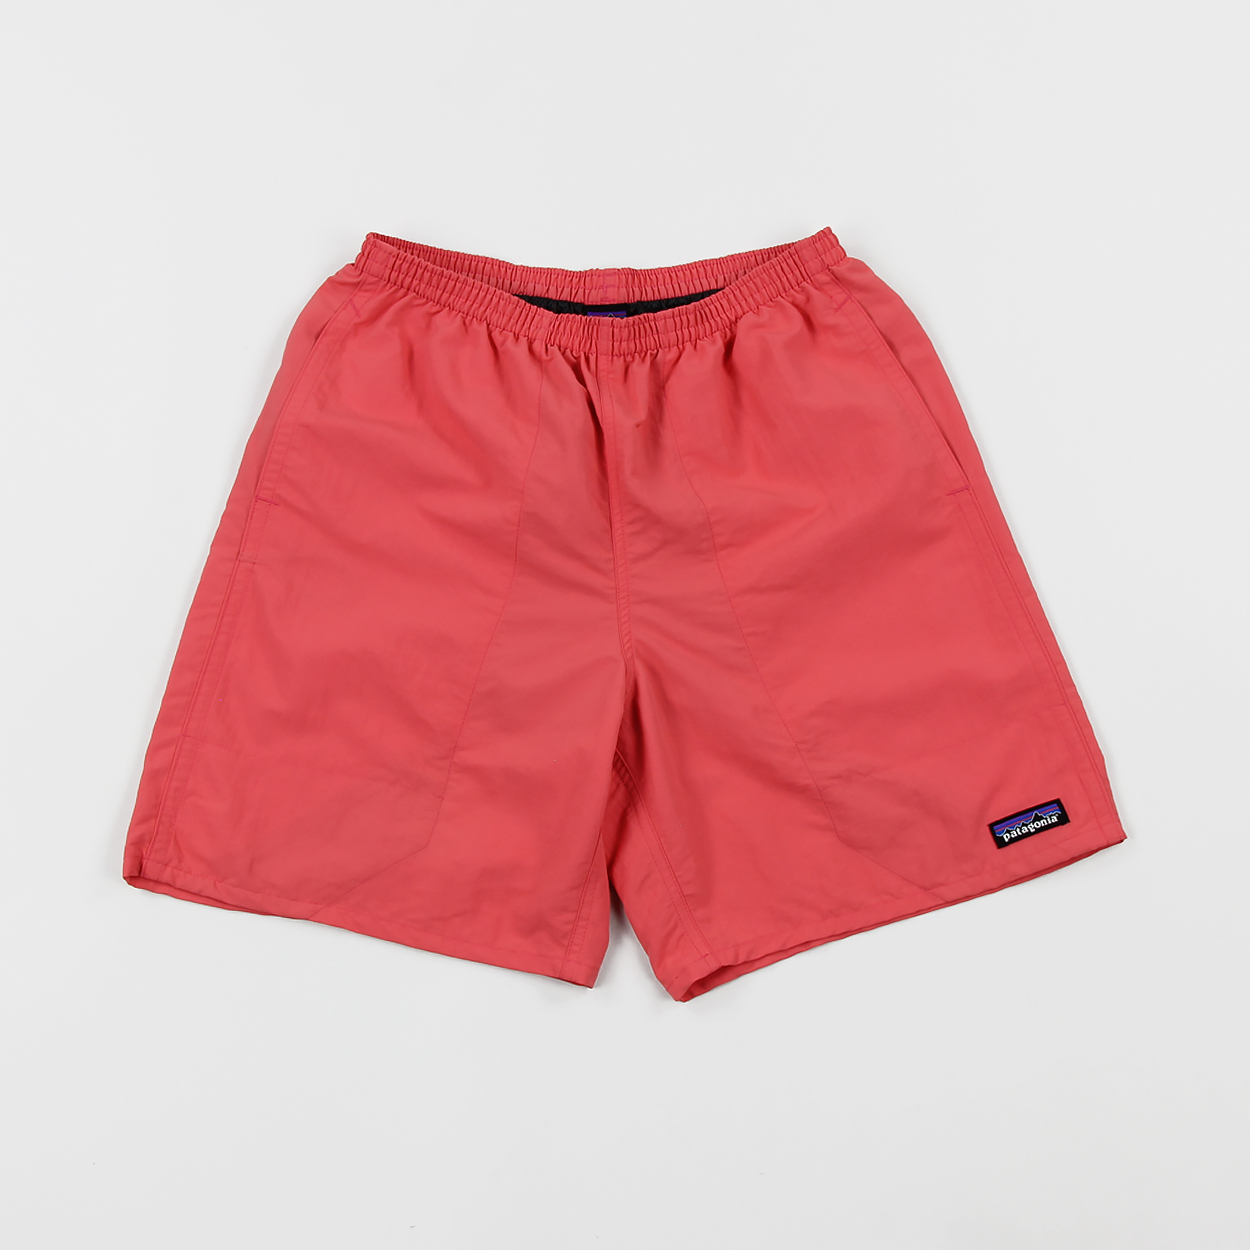 0d47e1666a Patagonia Mens Baggies Longs 7 inch Swimming Shorts Spiced Coral £50.00